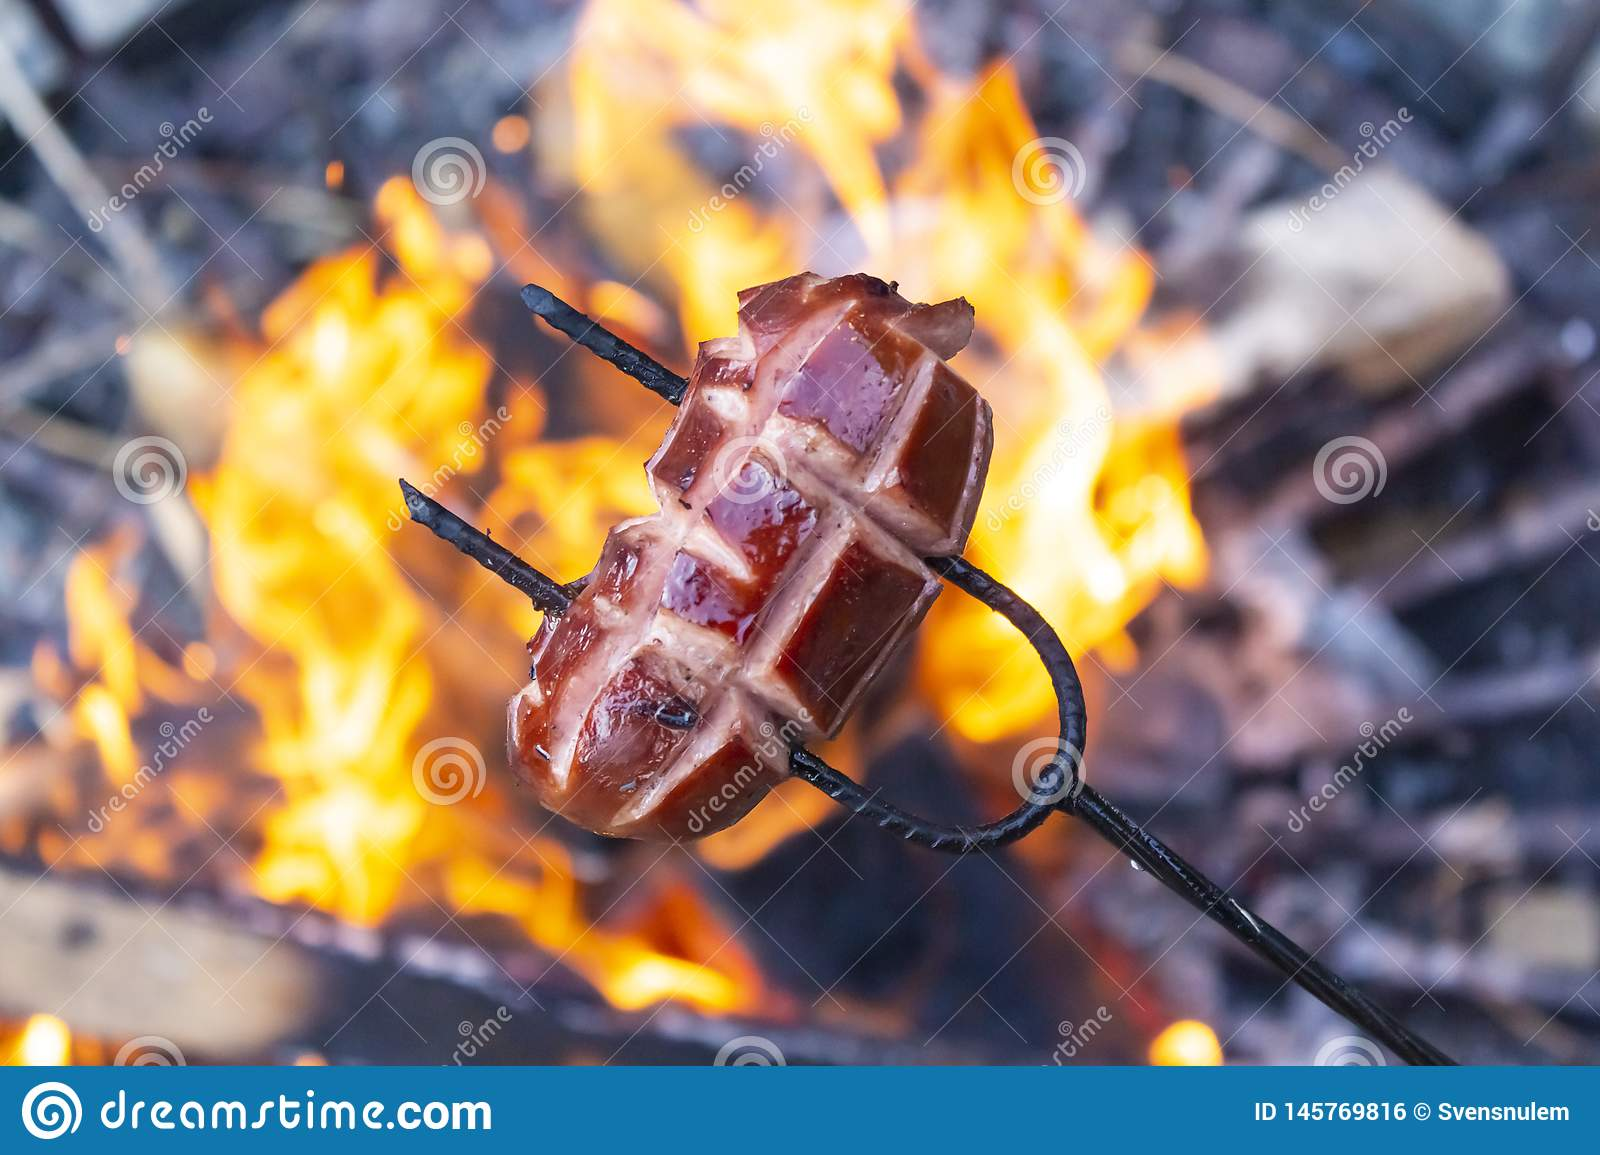 Sausages baking over camp fire. Party with friends